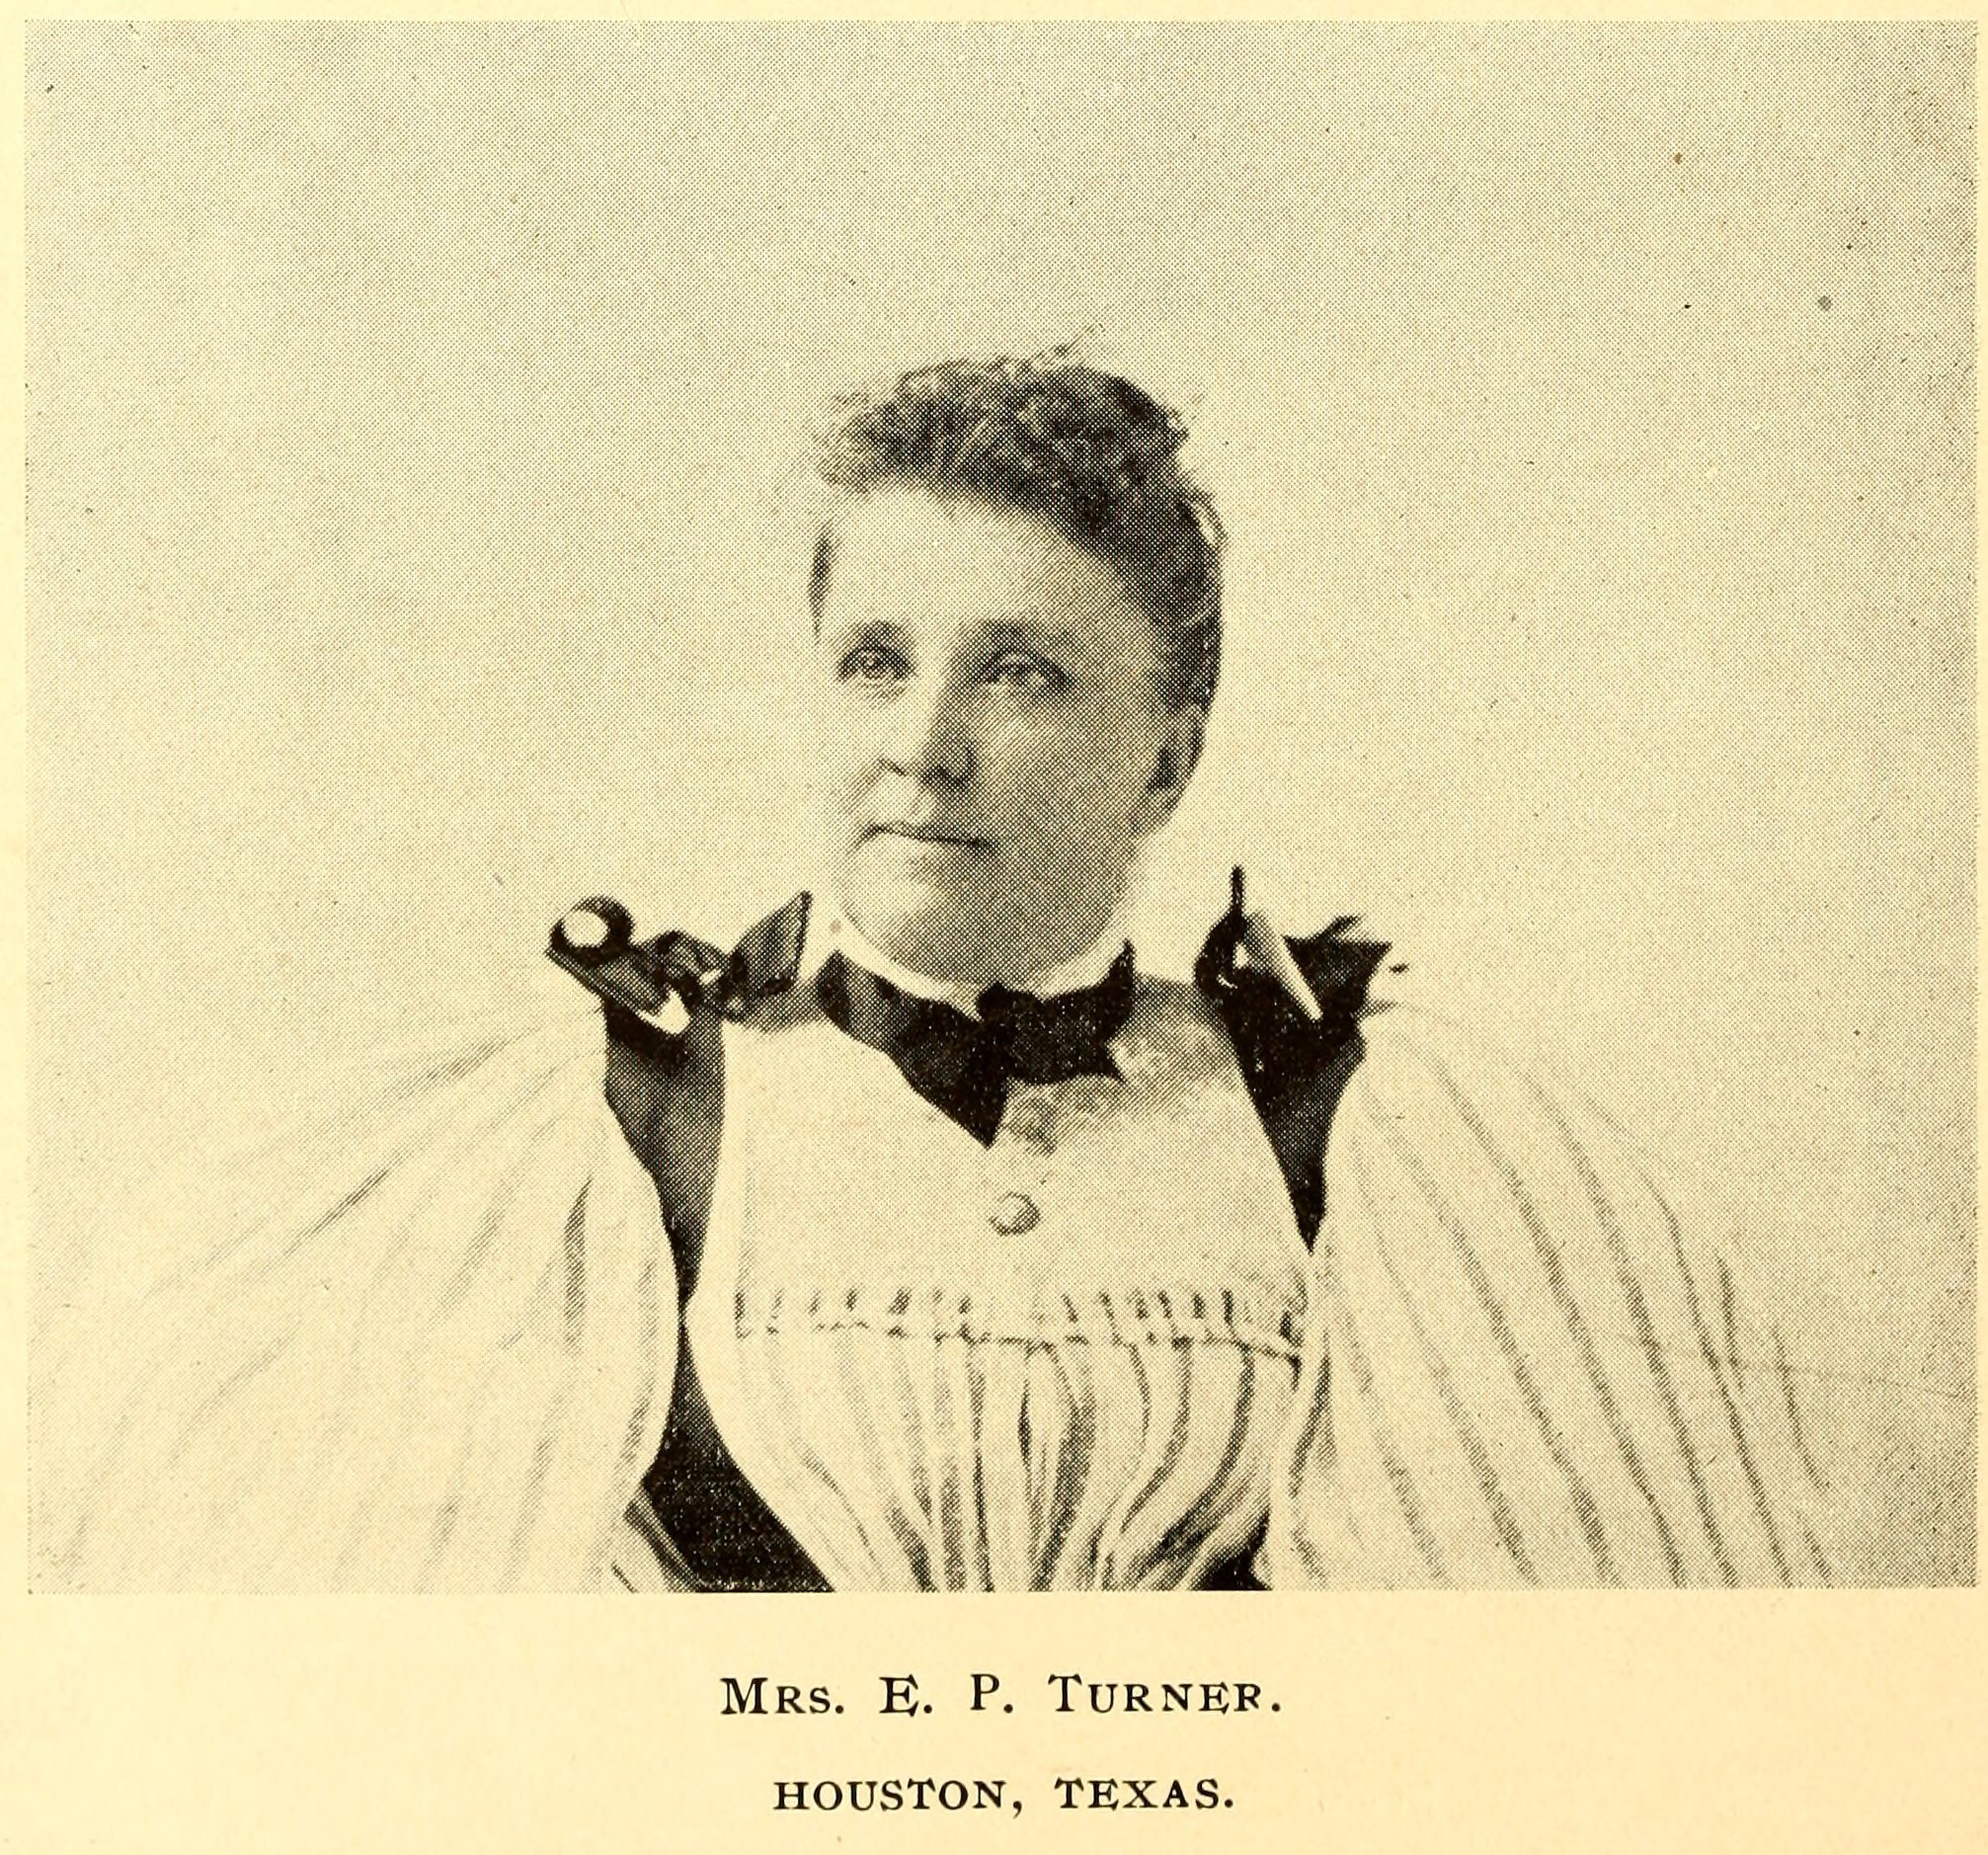 Mrs. E.P. Turner of Houston, Texas